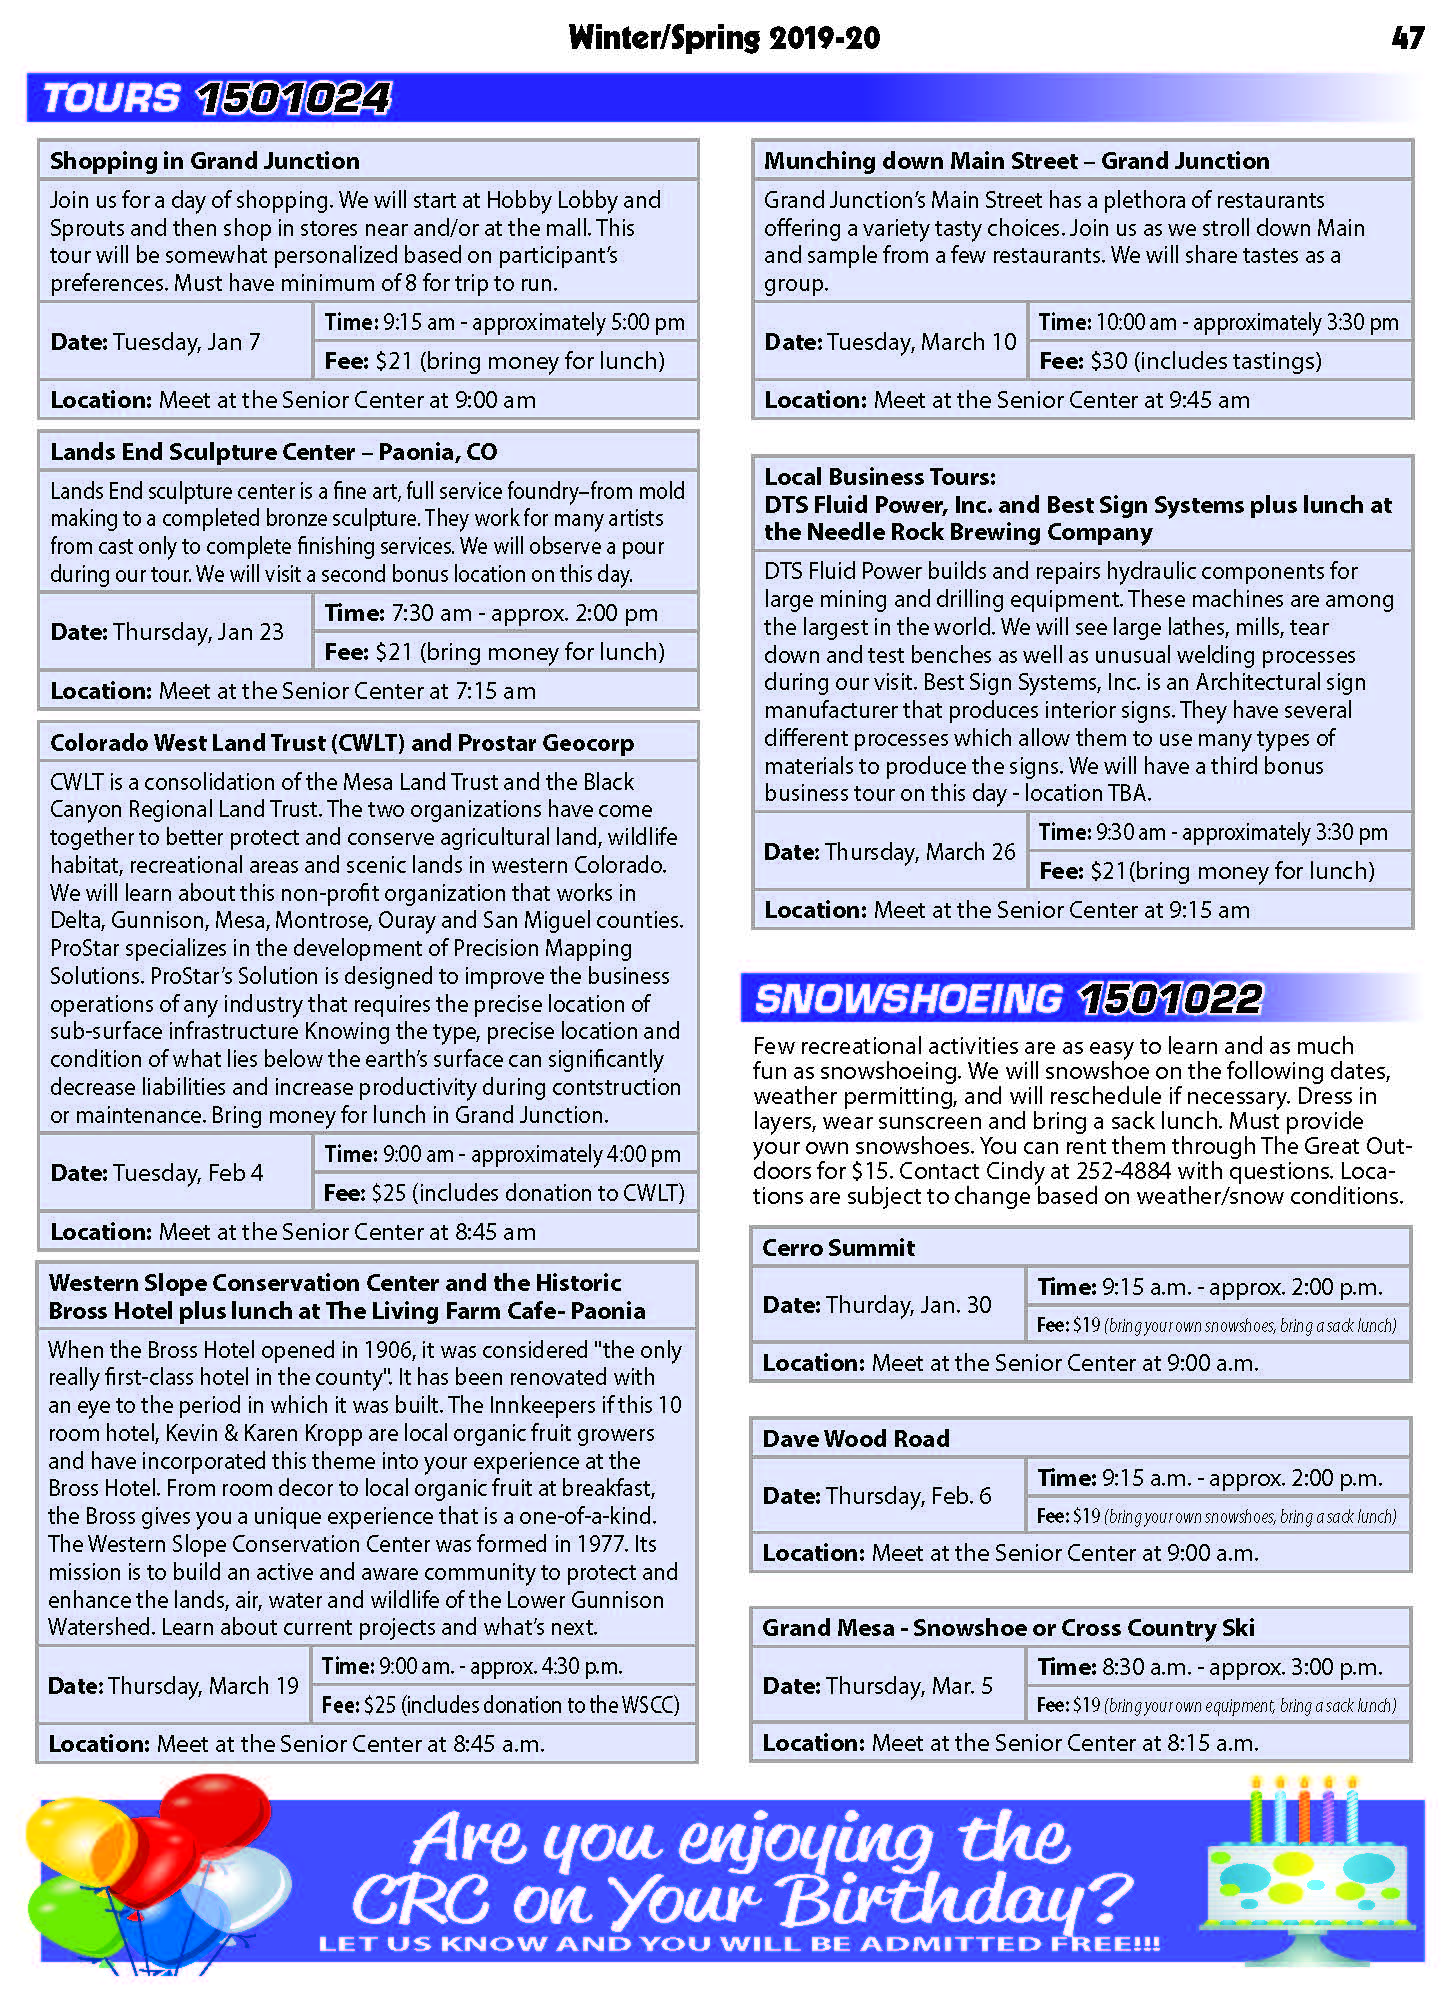 19-20-MRD-WinterSpring-GuideCOMPLETE_Page_47